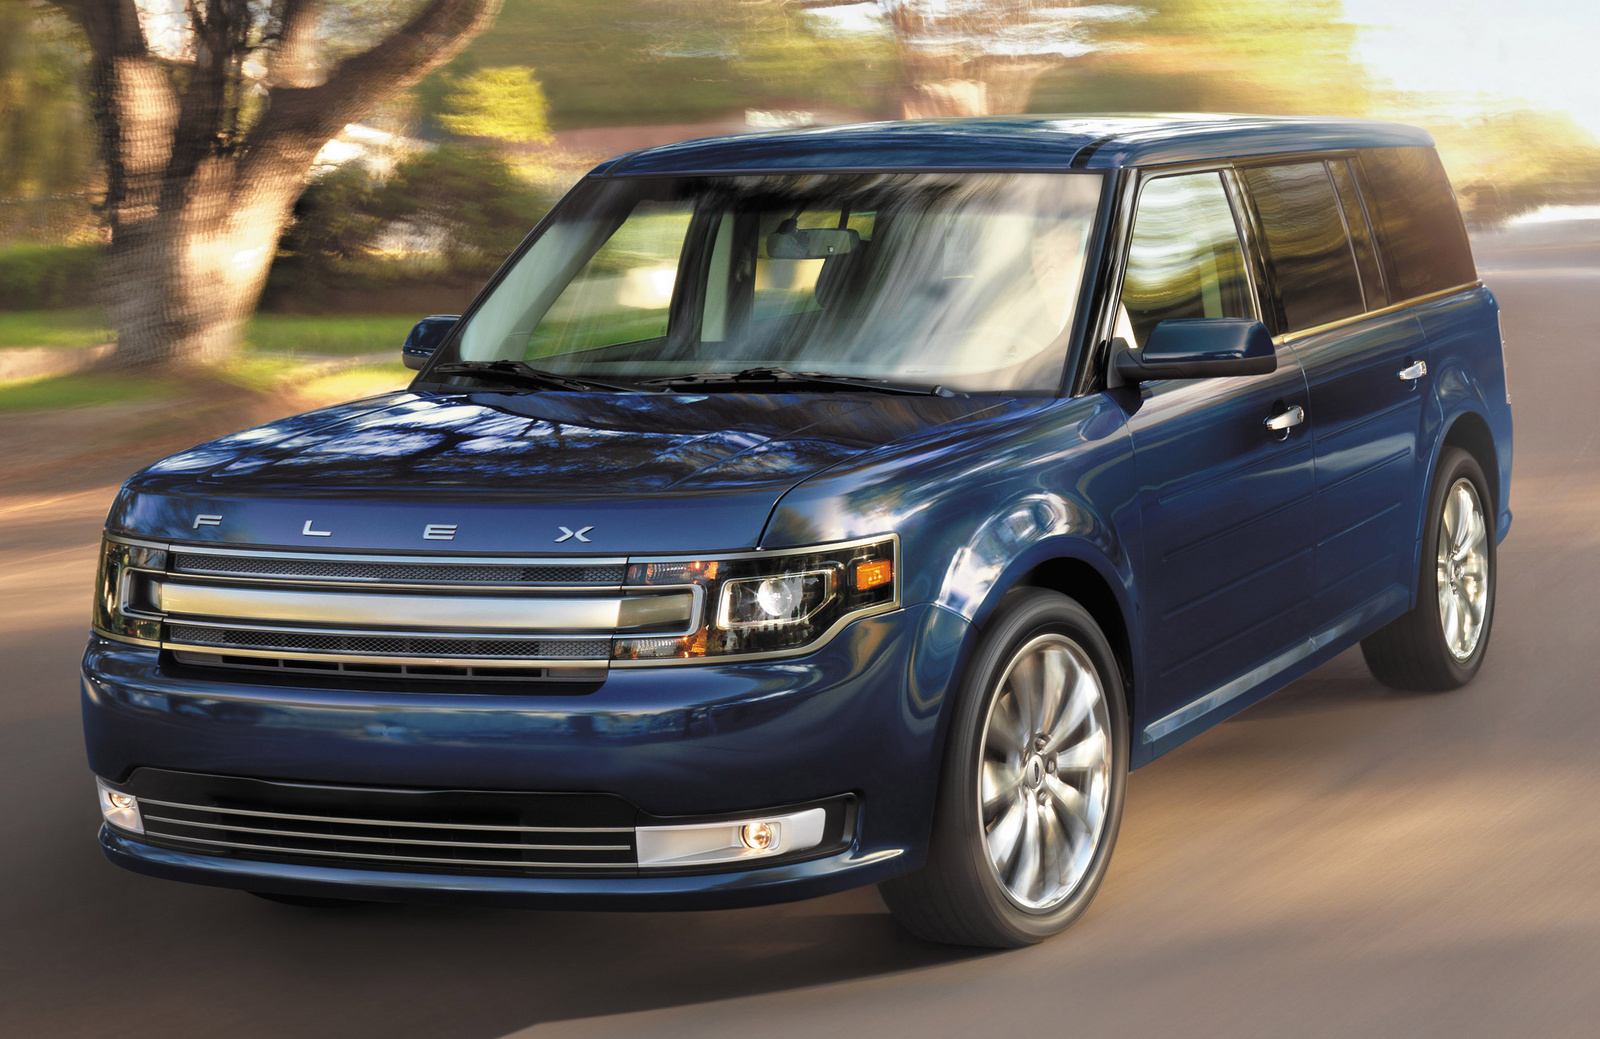 Ford Flex For Sale Near Me